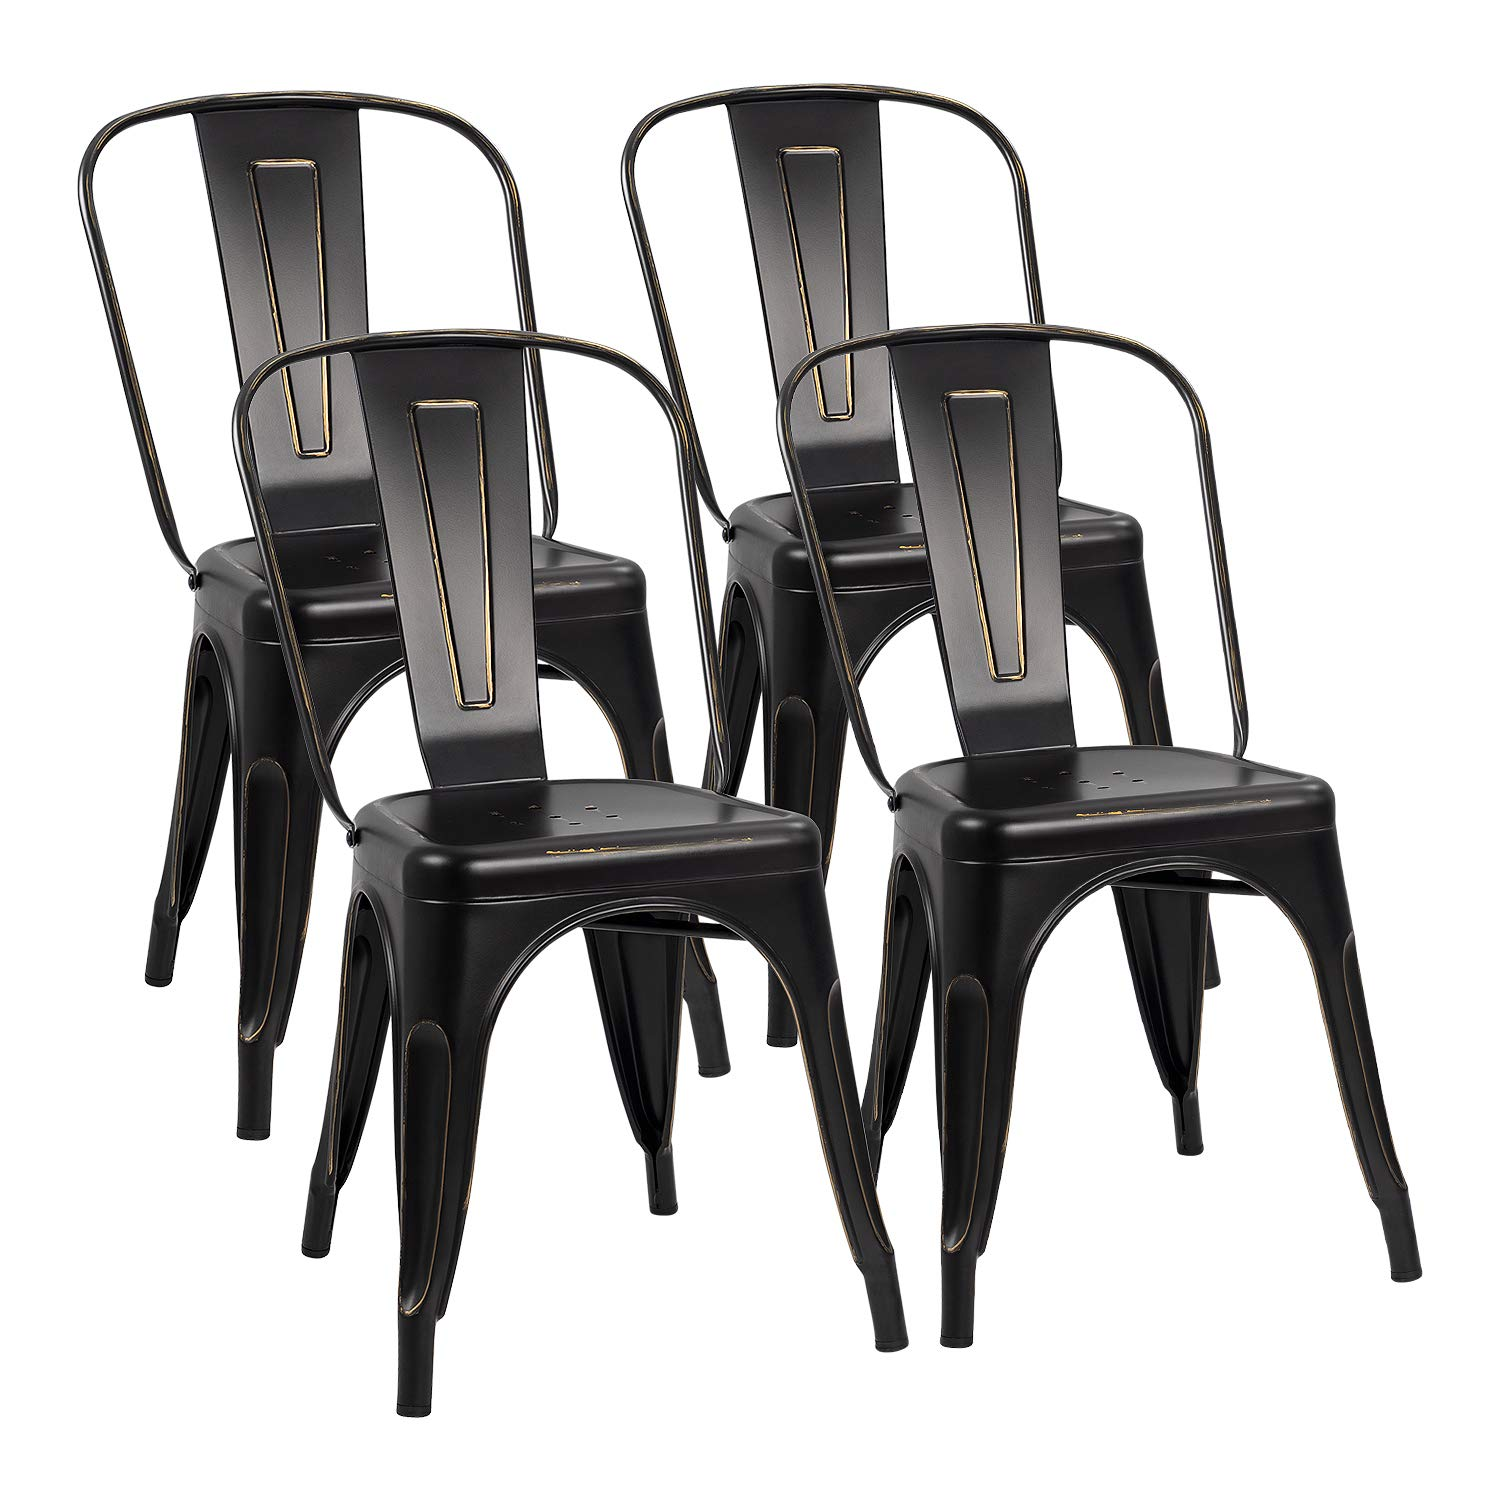 Metal Chairs Indoor-Outdoor Stackable Dinning Chairs with Back Modern Style Industrial Bistro Kitchen Cafe Side Chair Set of 4 (Black Gold)